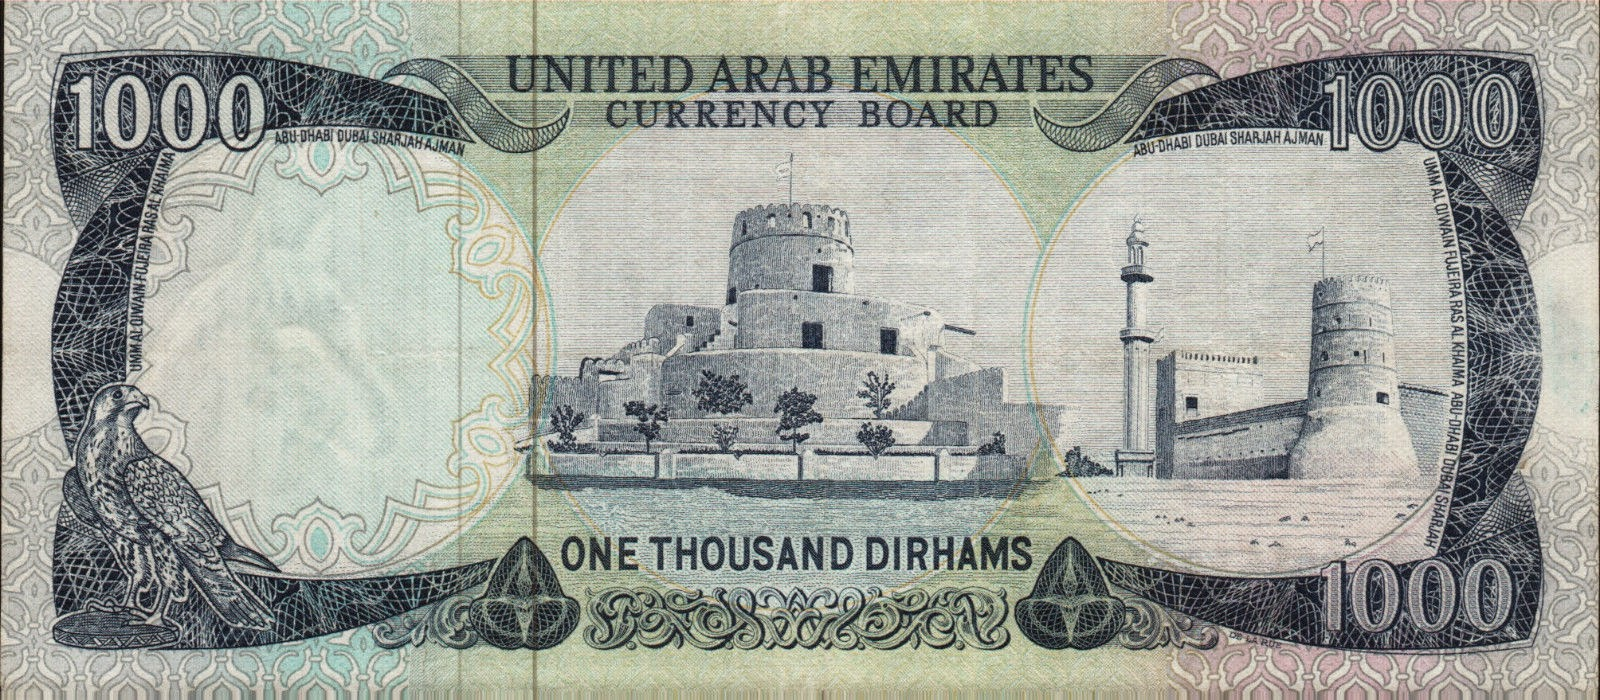 United Arab Emirates Currency 1000 Dirhams banknote 1973 Fort Jahili at Al Ain; al-Fahidi Fort and the minaret of the Grand Mosque in Dubai